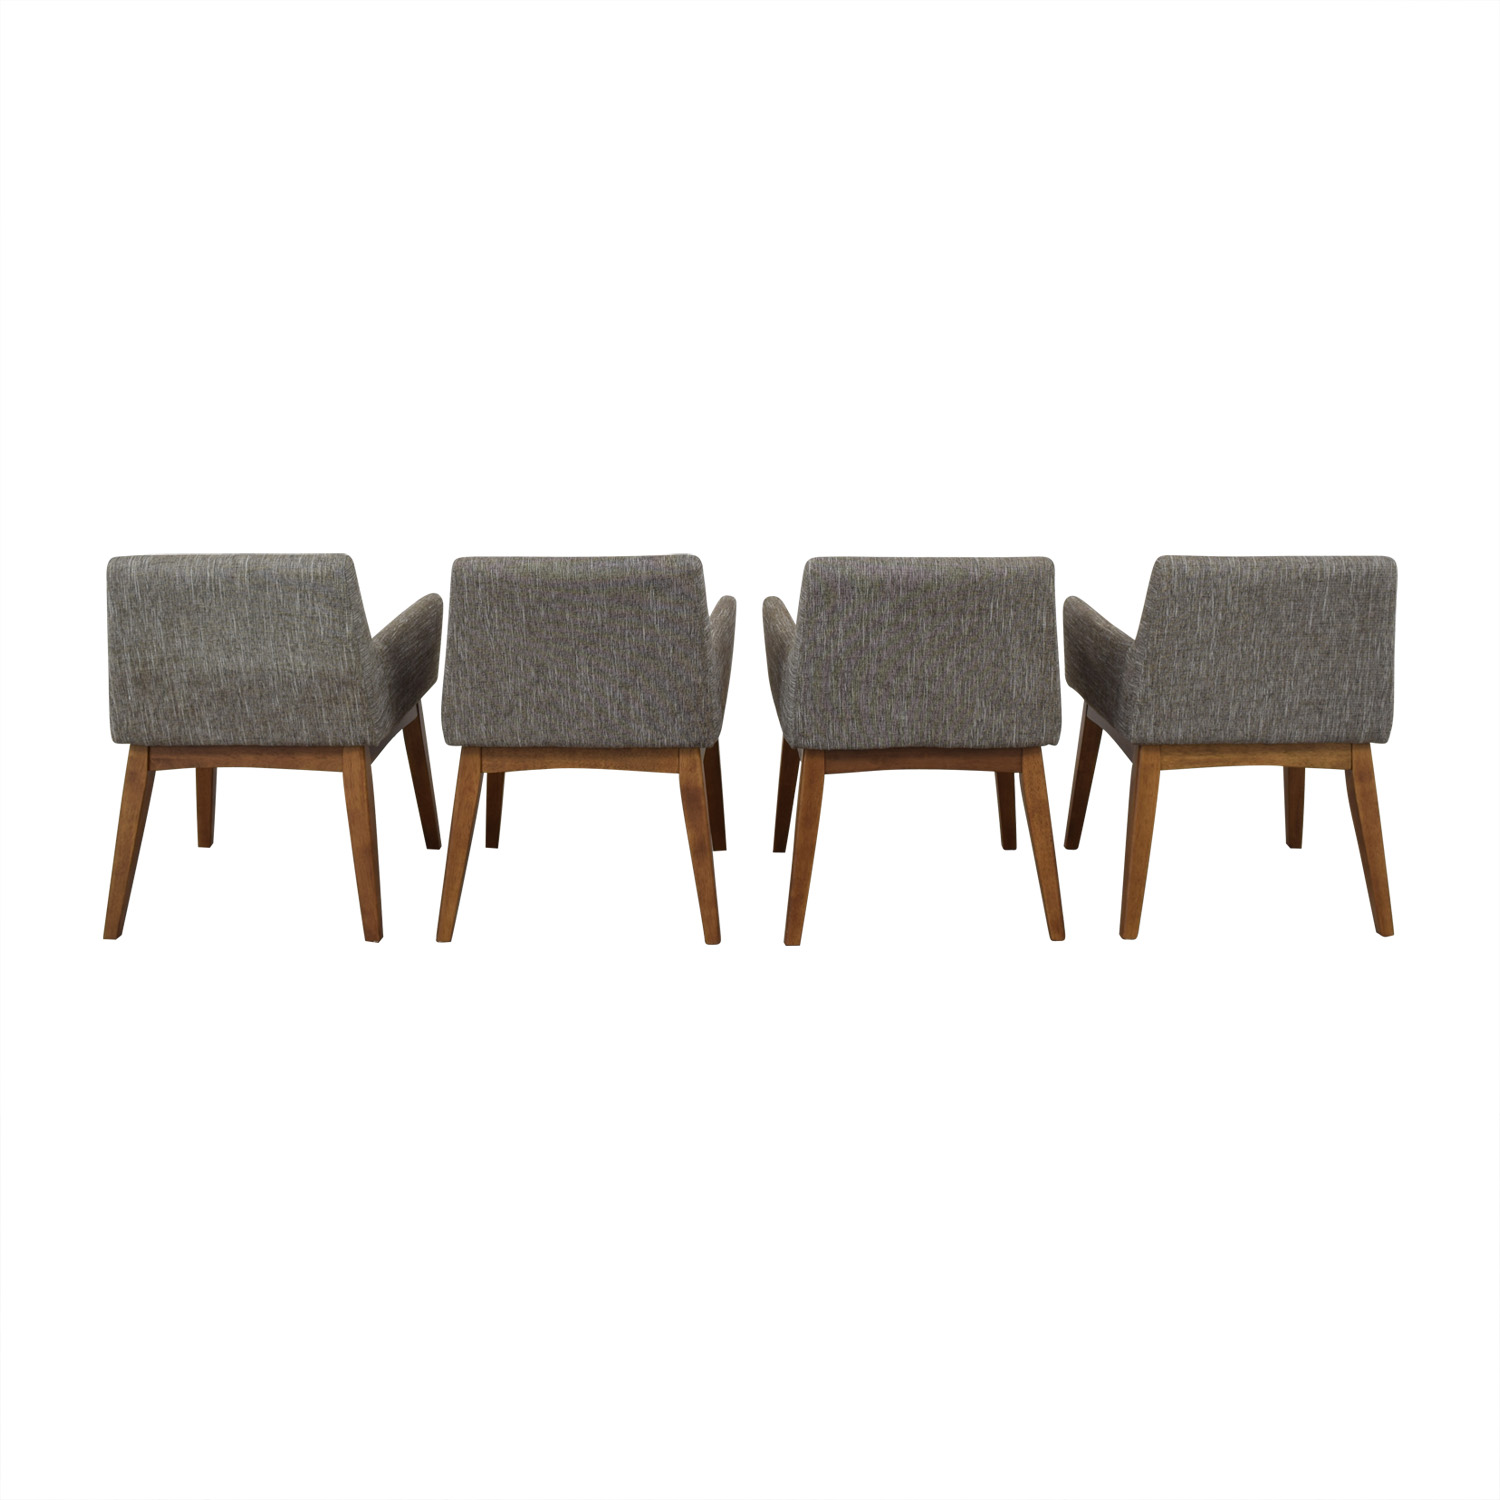 Article Article Feast Dining Chairs for sale